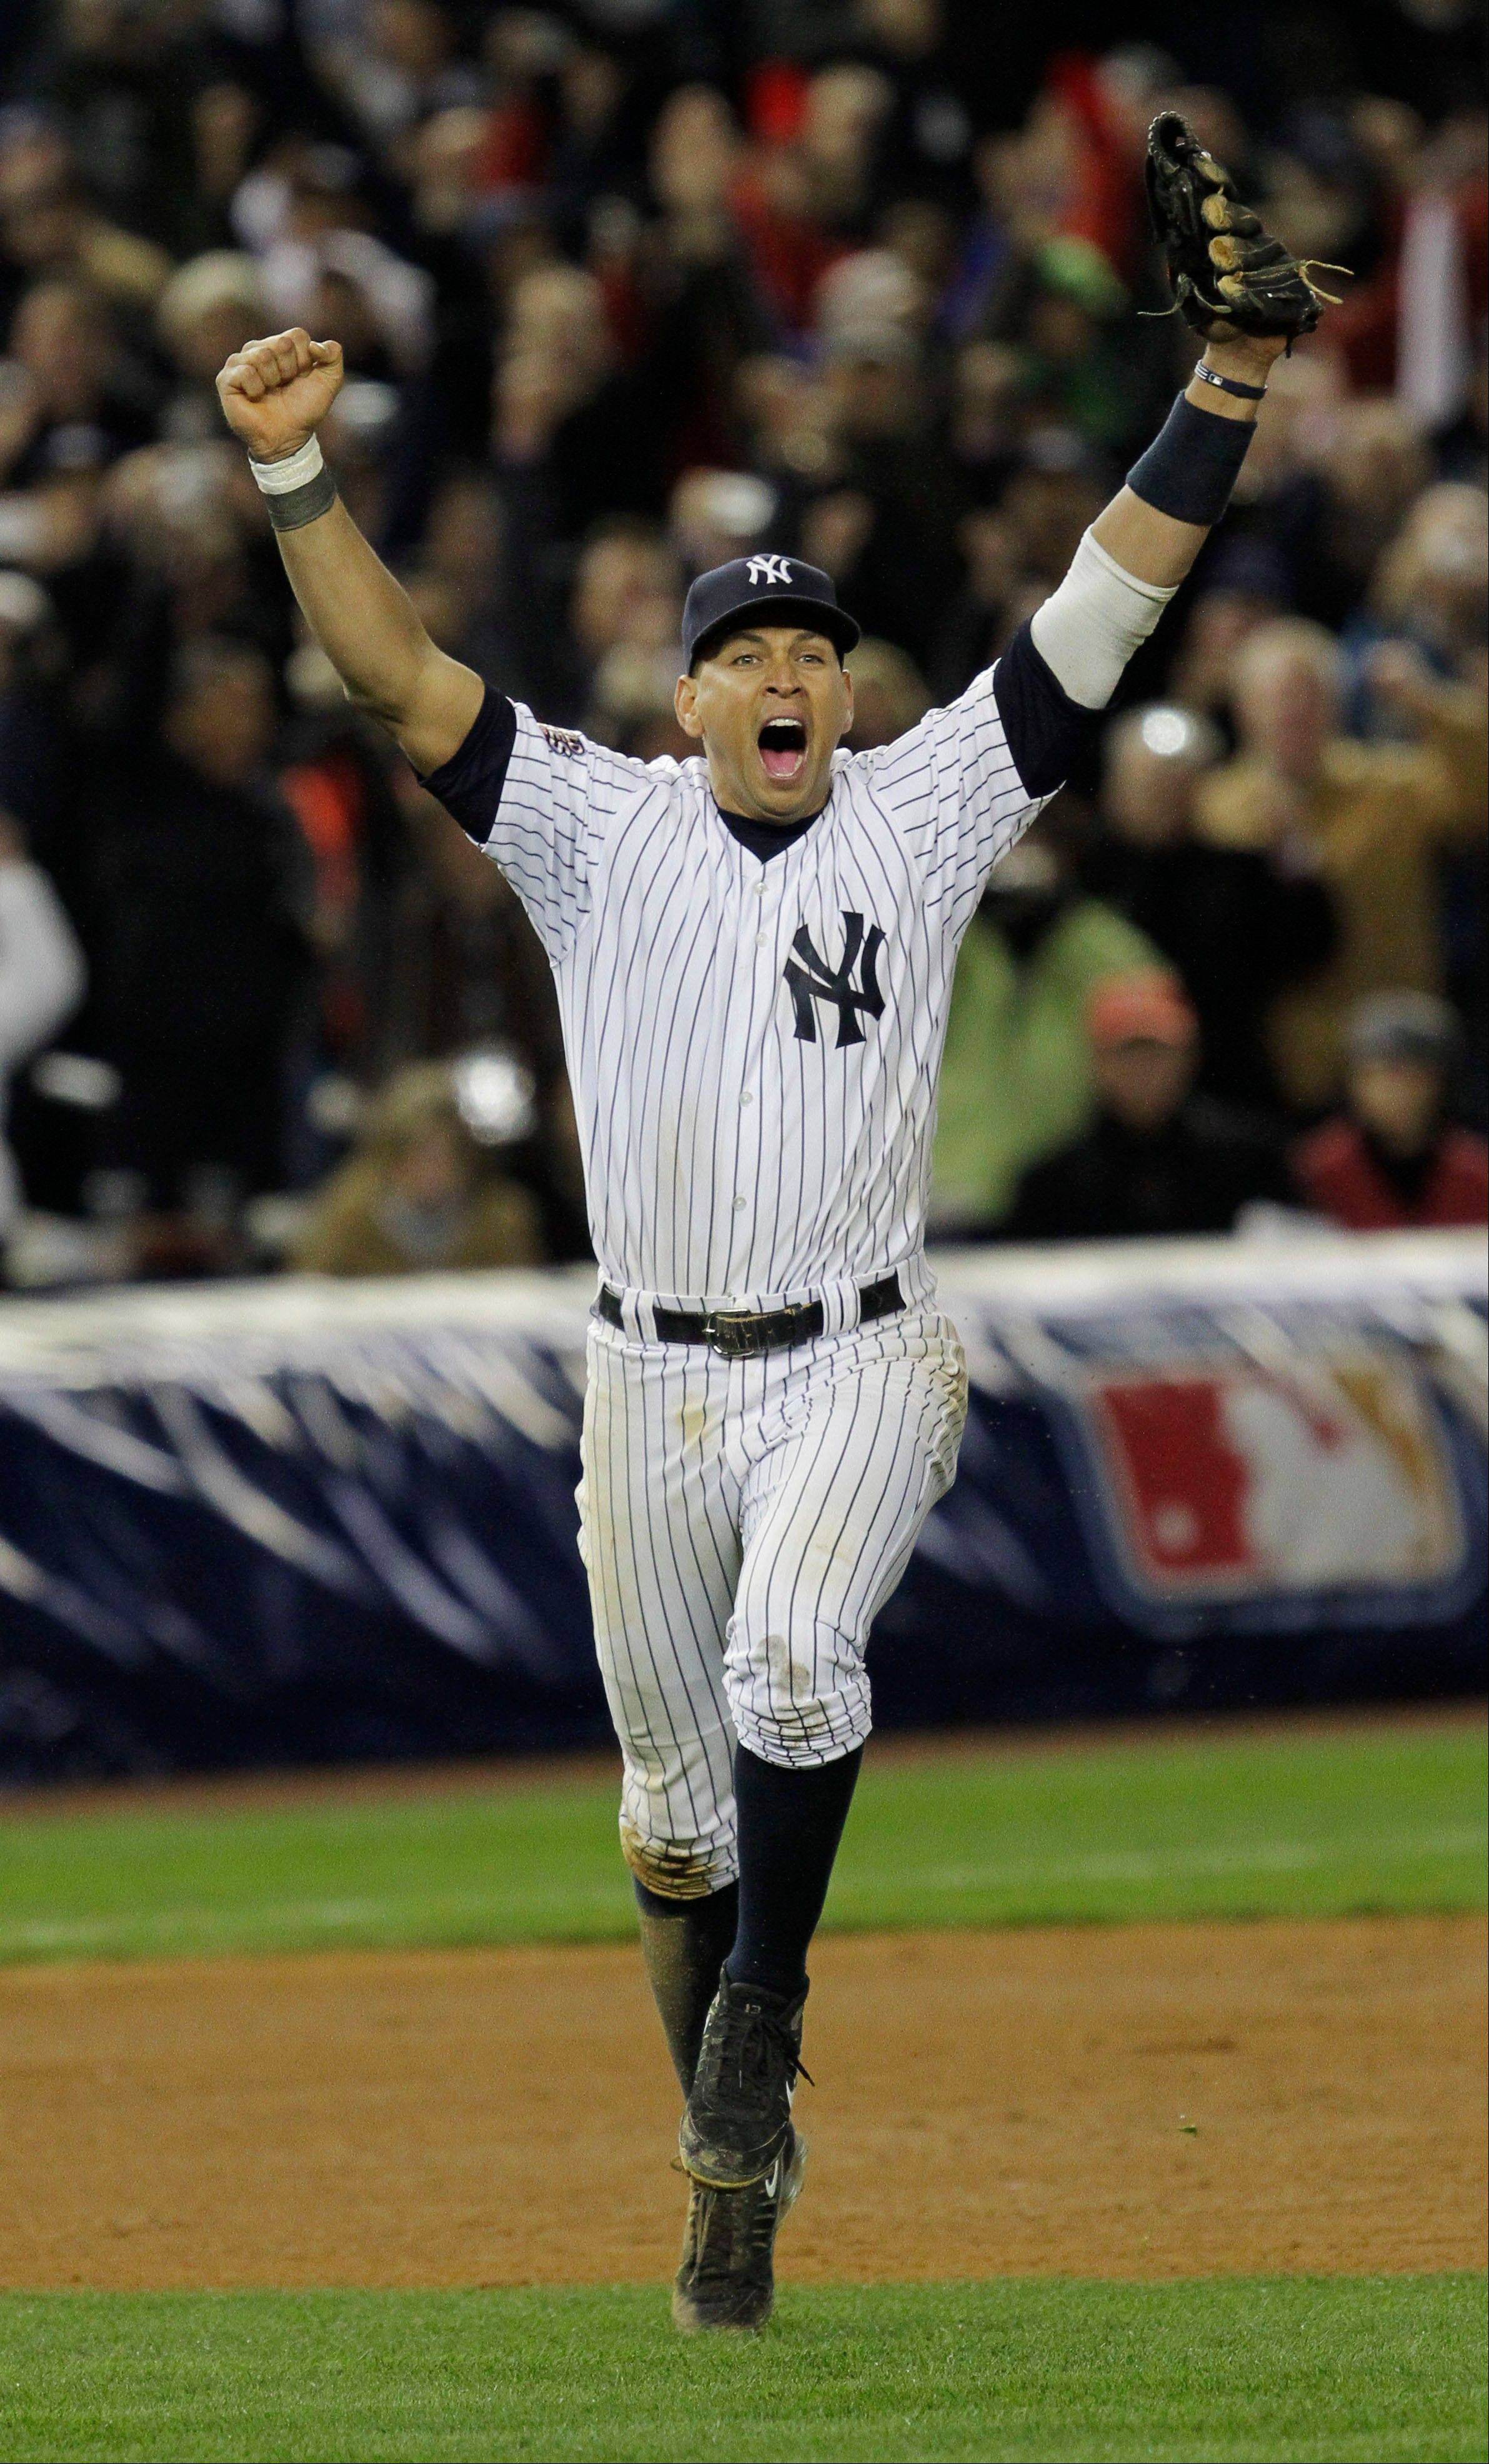 FILE - In this Nov. 4, 2009, file photo, New York Yankees' Alex Rodriguez celebrates after winning the Major League Baseball World Series against the Philadelphia Phillies in New York. Three MVP awards, 14 All-Star selections, two record-setting contracts and countless controversies later, A-Rod is the biggest and wealthiest target of an investigation into performance-enhancing drugs, with a decision from baseball Commissioner Bud Selig expected on Monday, Aug. 5, 2013.